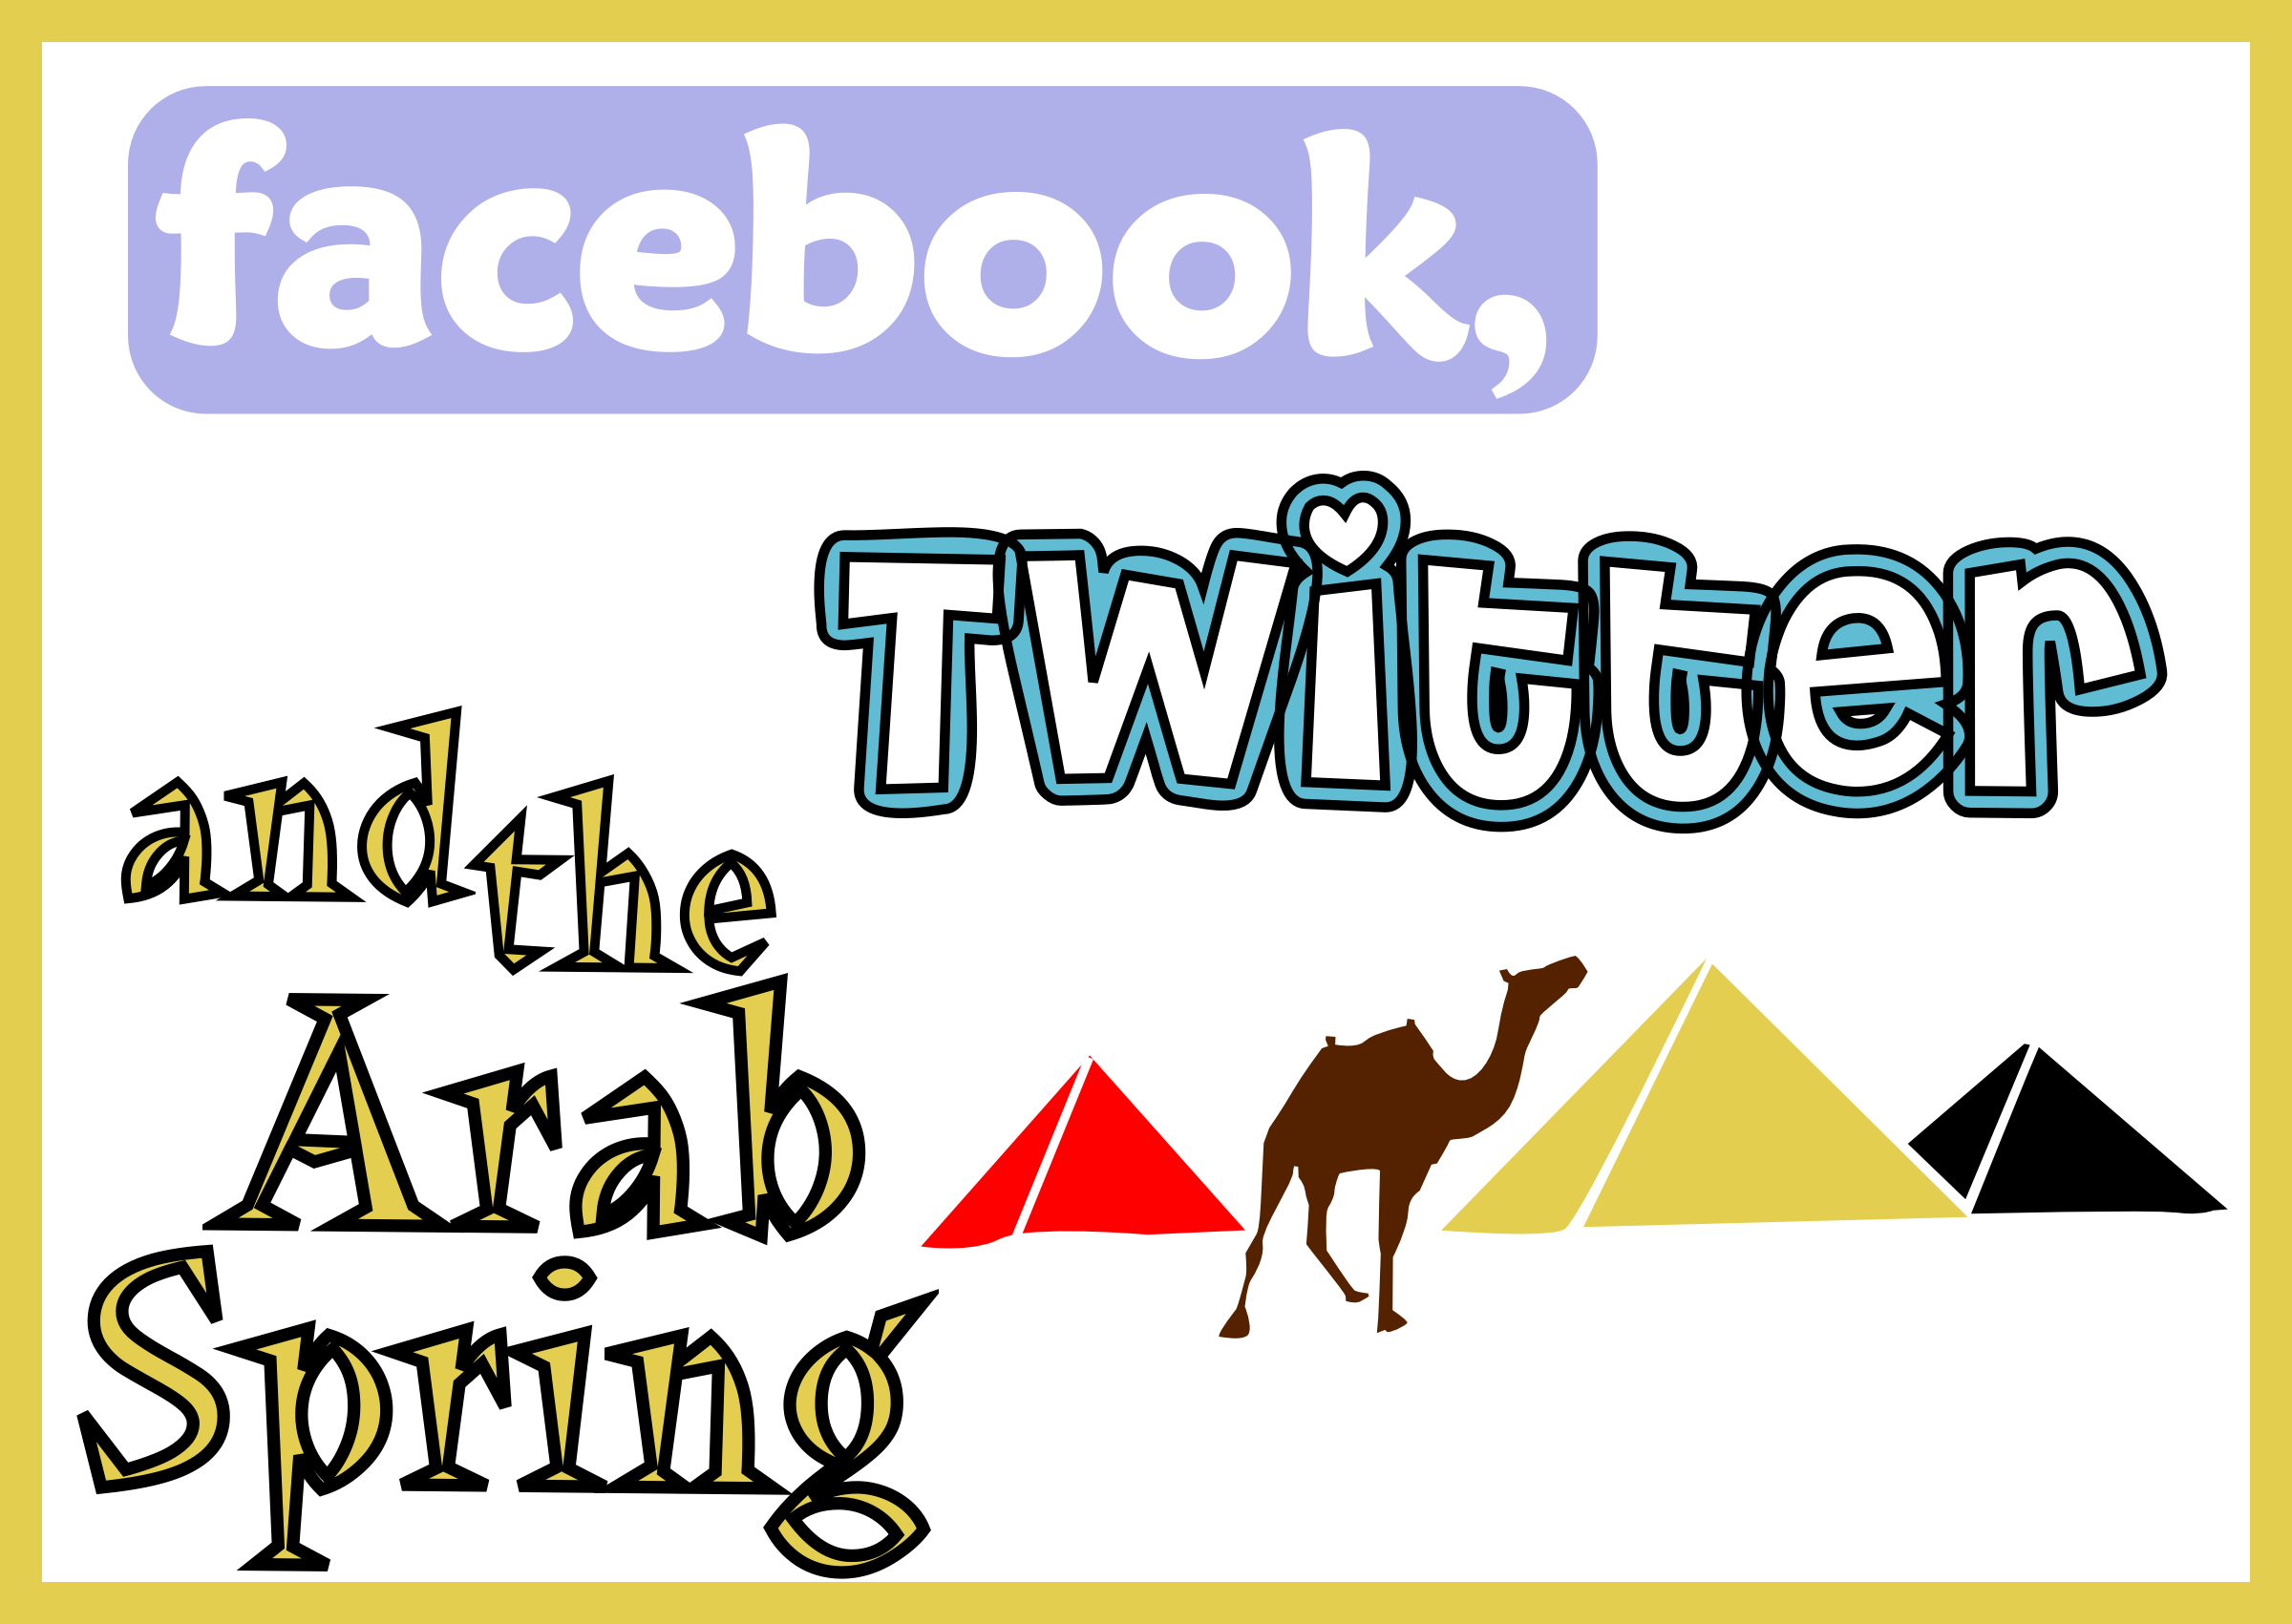 Facebook, Twitter & the Arab Spring